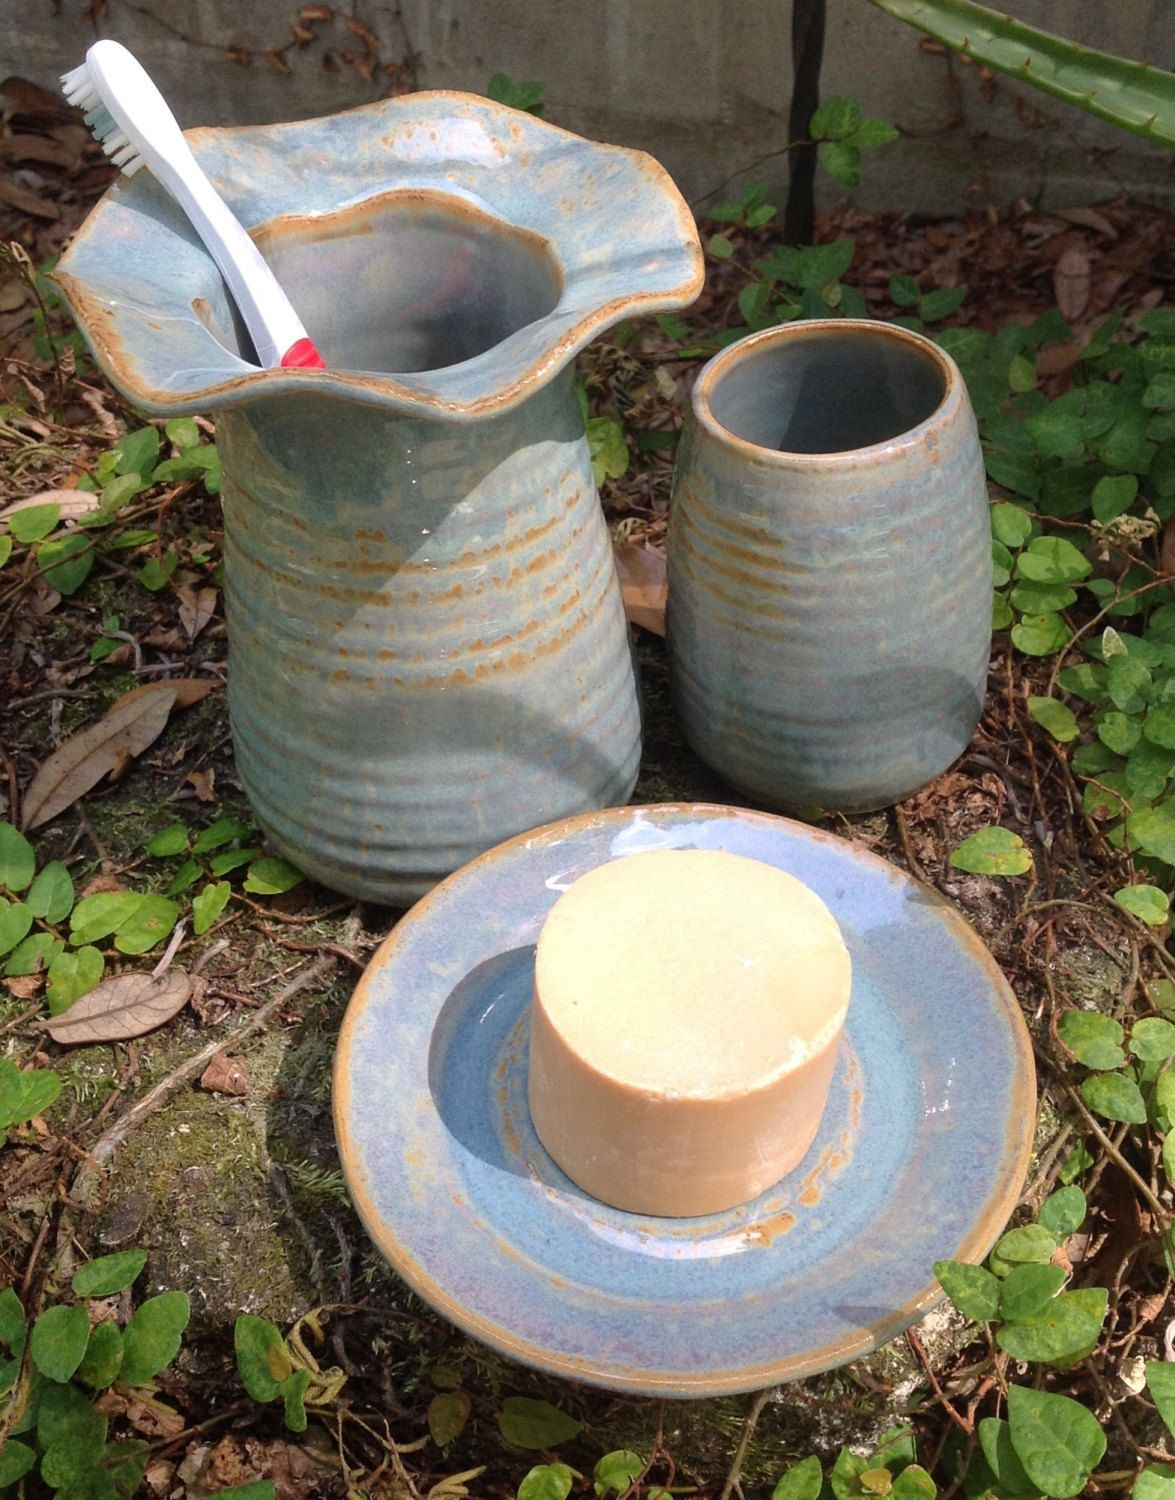 Pottery, bathroom set, soap dish, toothbrush holder, tumbler, stoneware, blue, opal by muddyme on Etsy